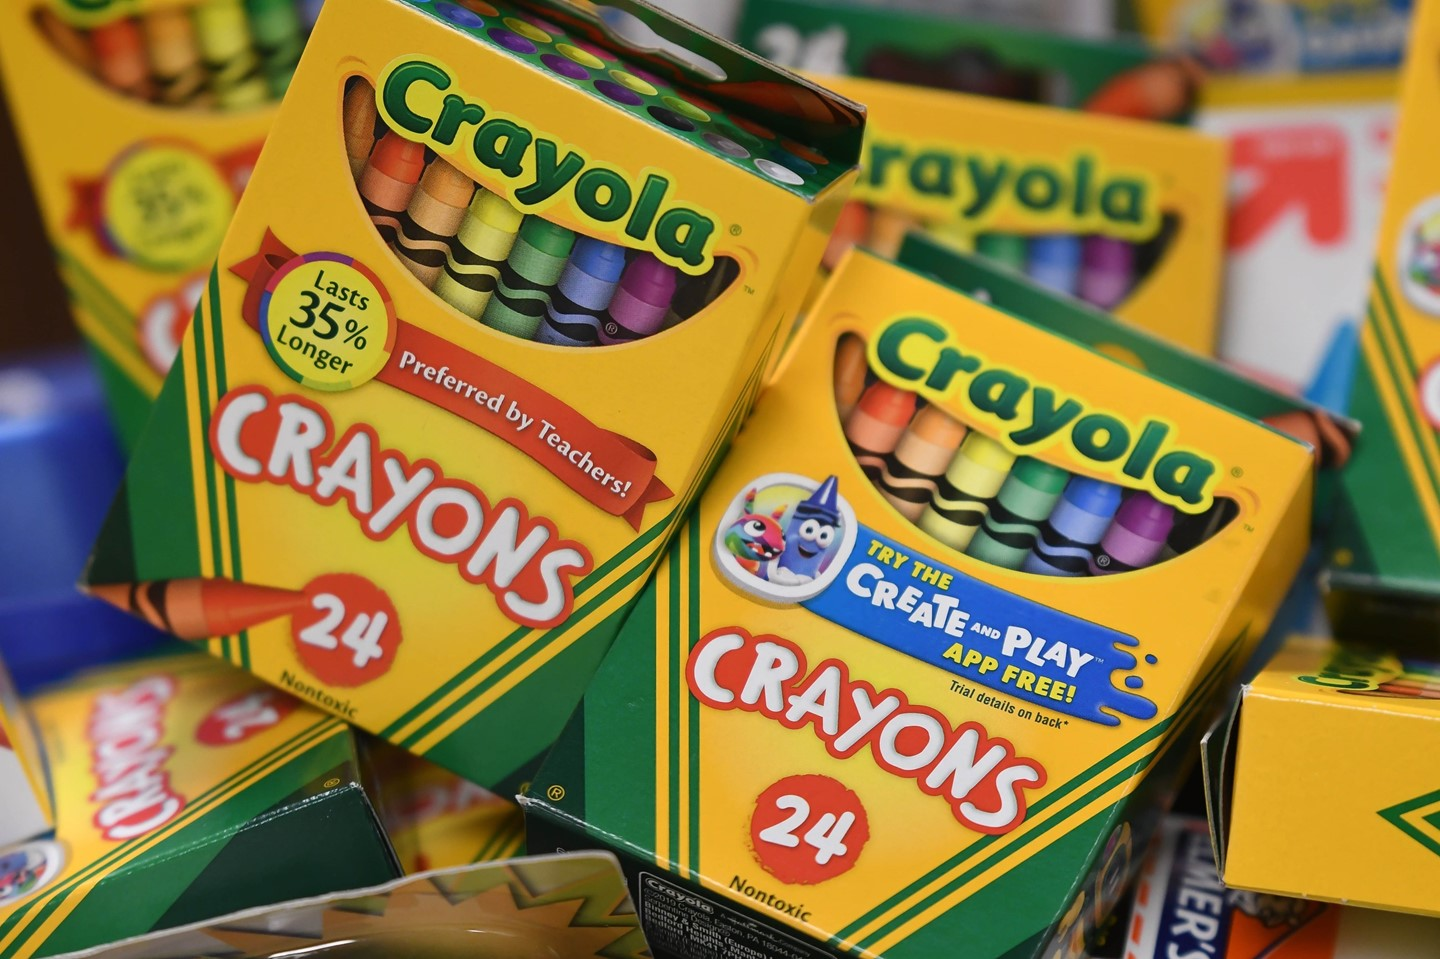 Crayons donated to the district